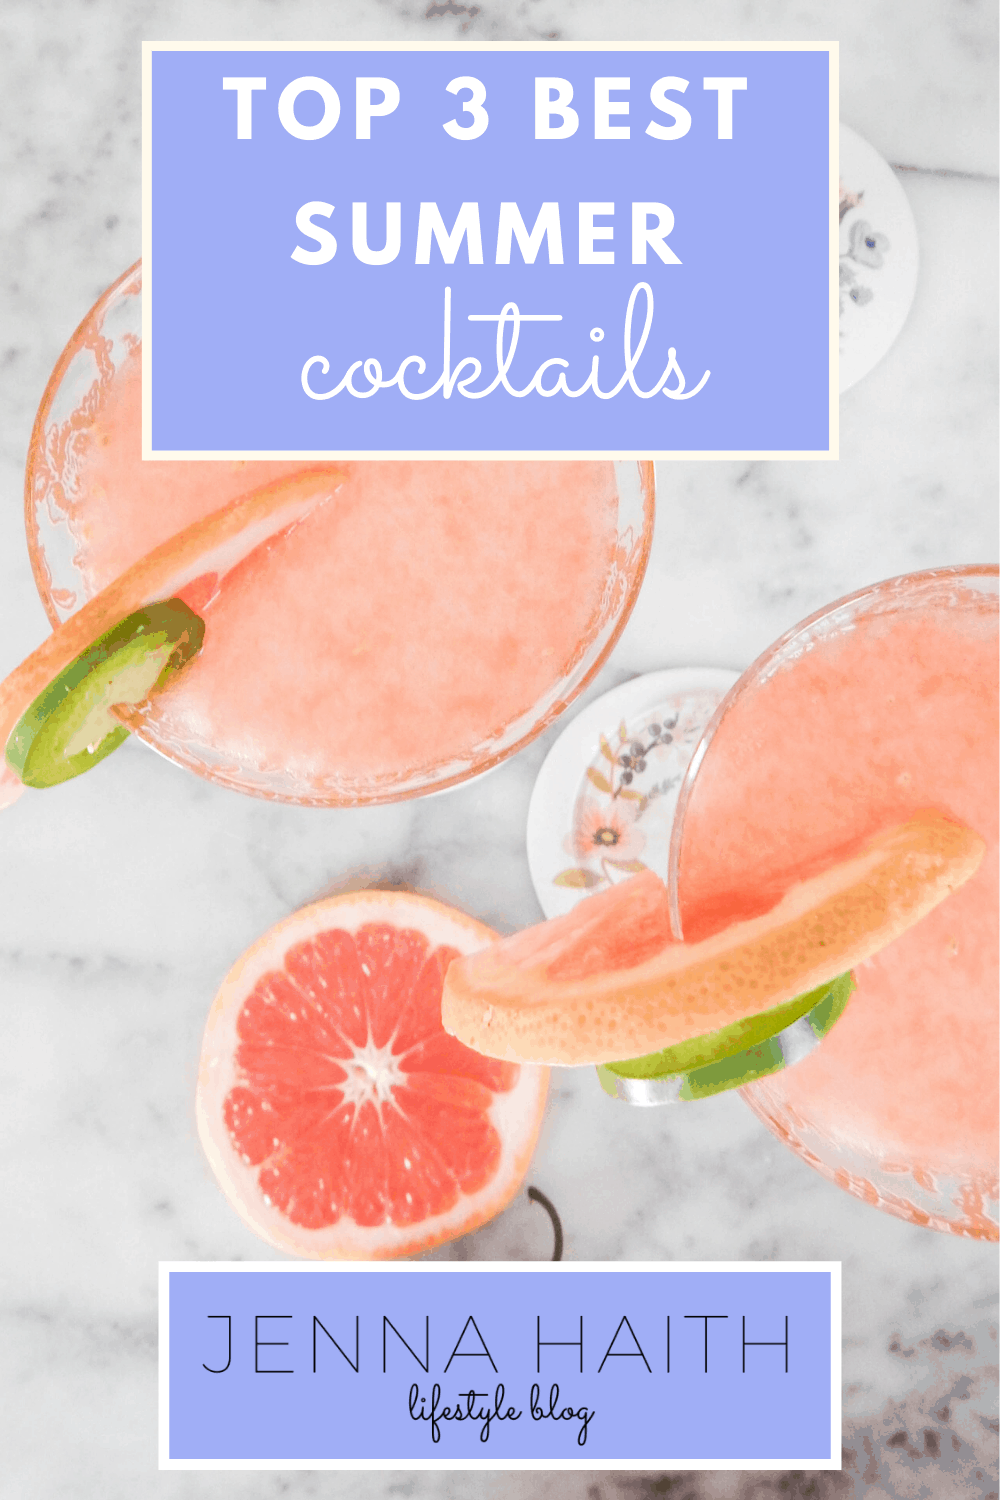 Top 3 Best Summer Cocktails